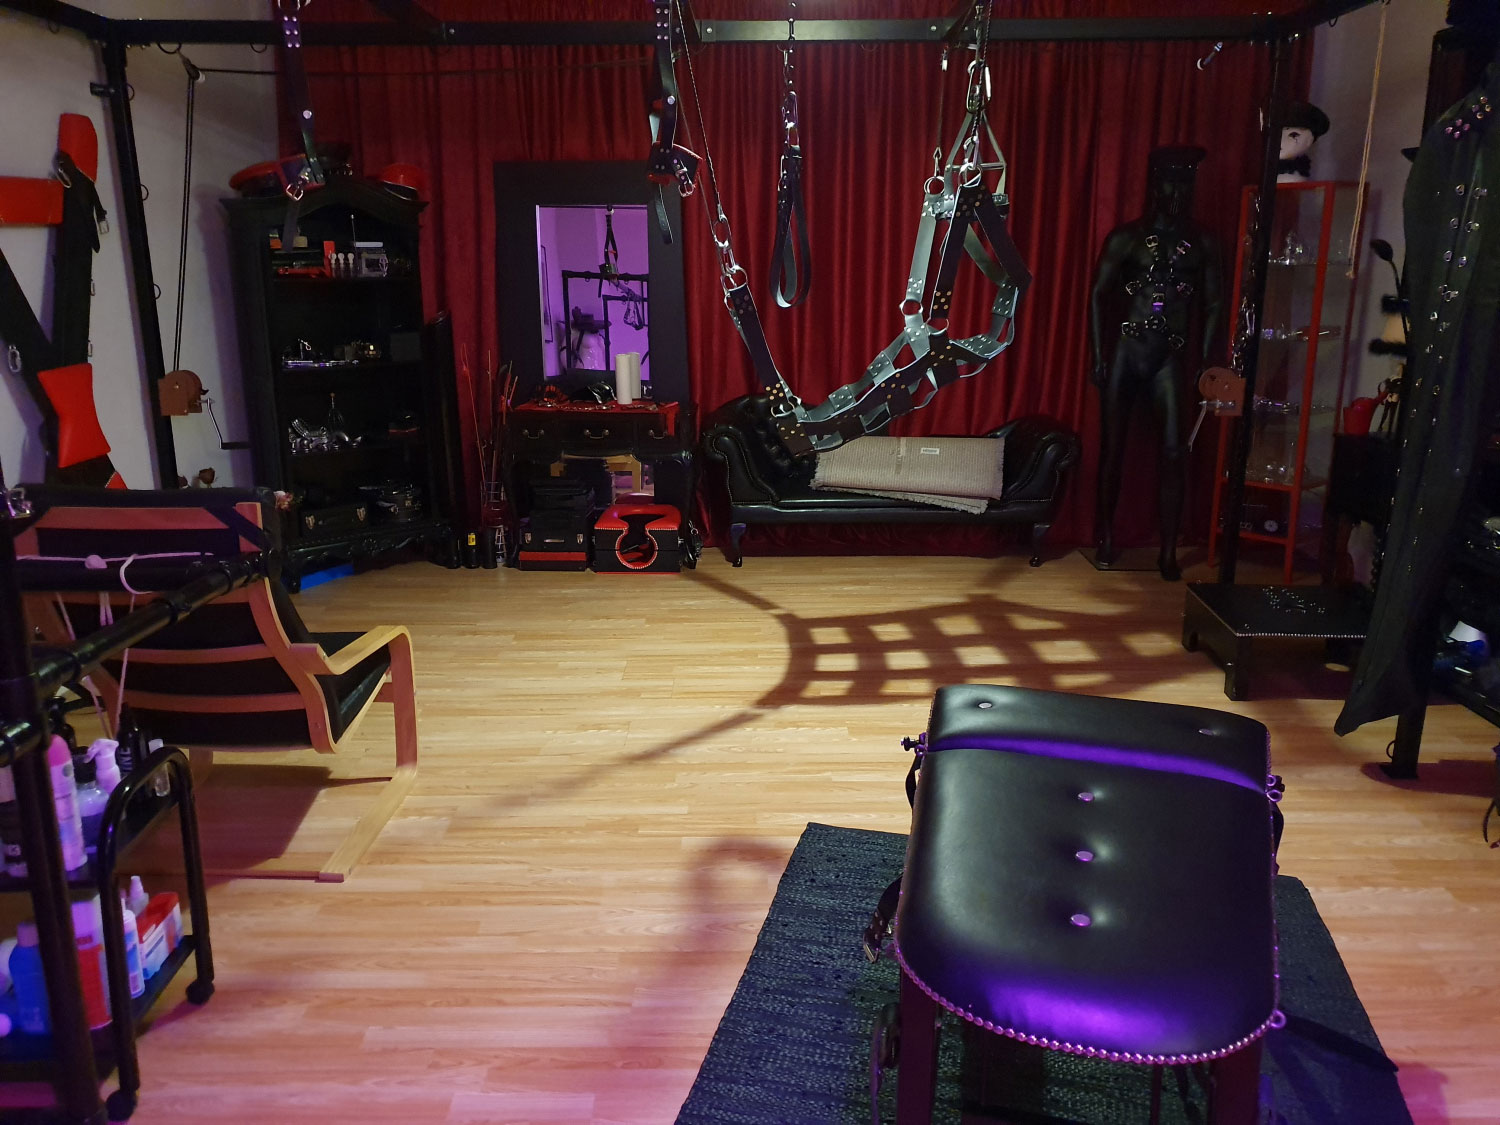 London BDSM Studio